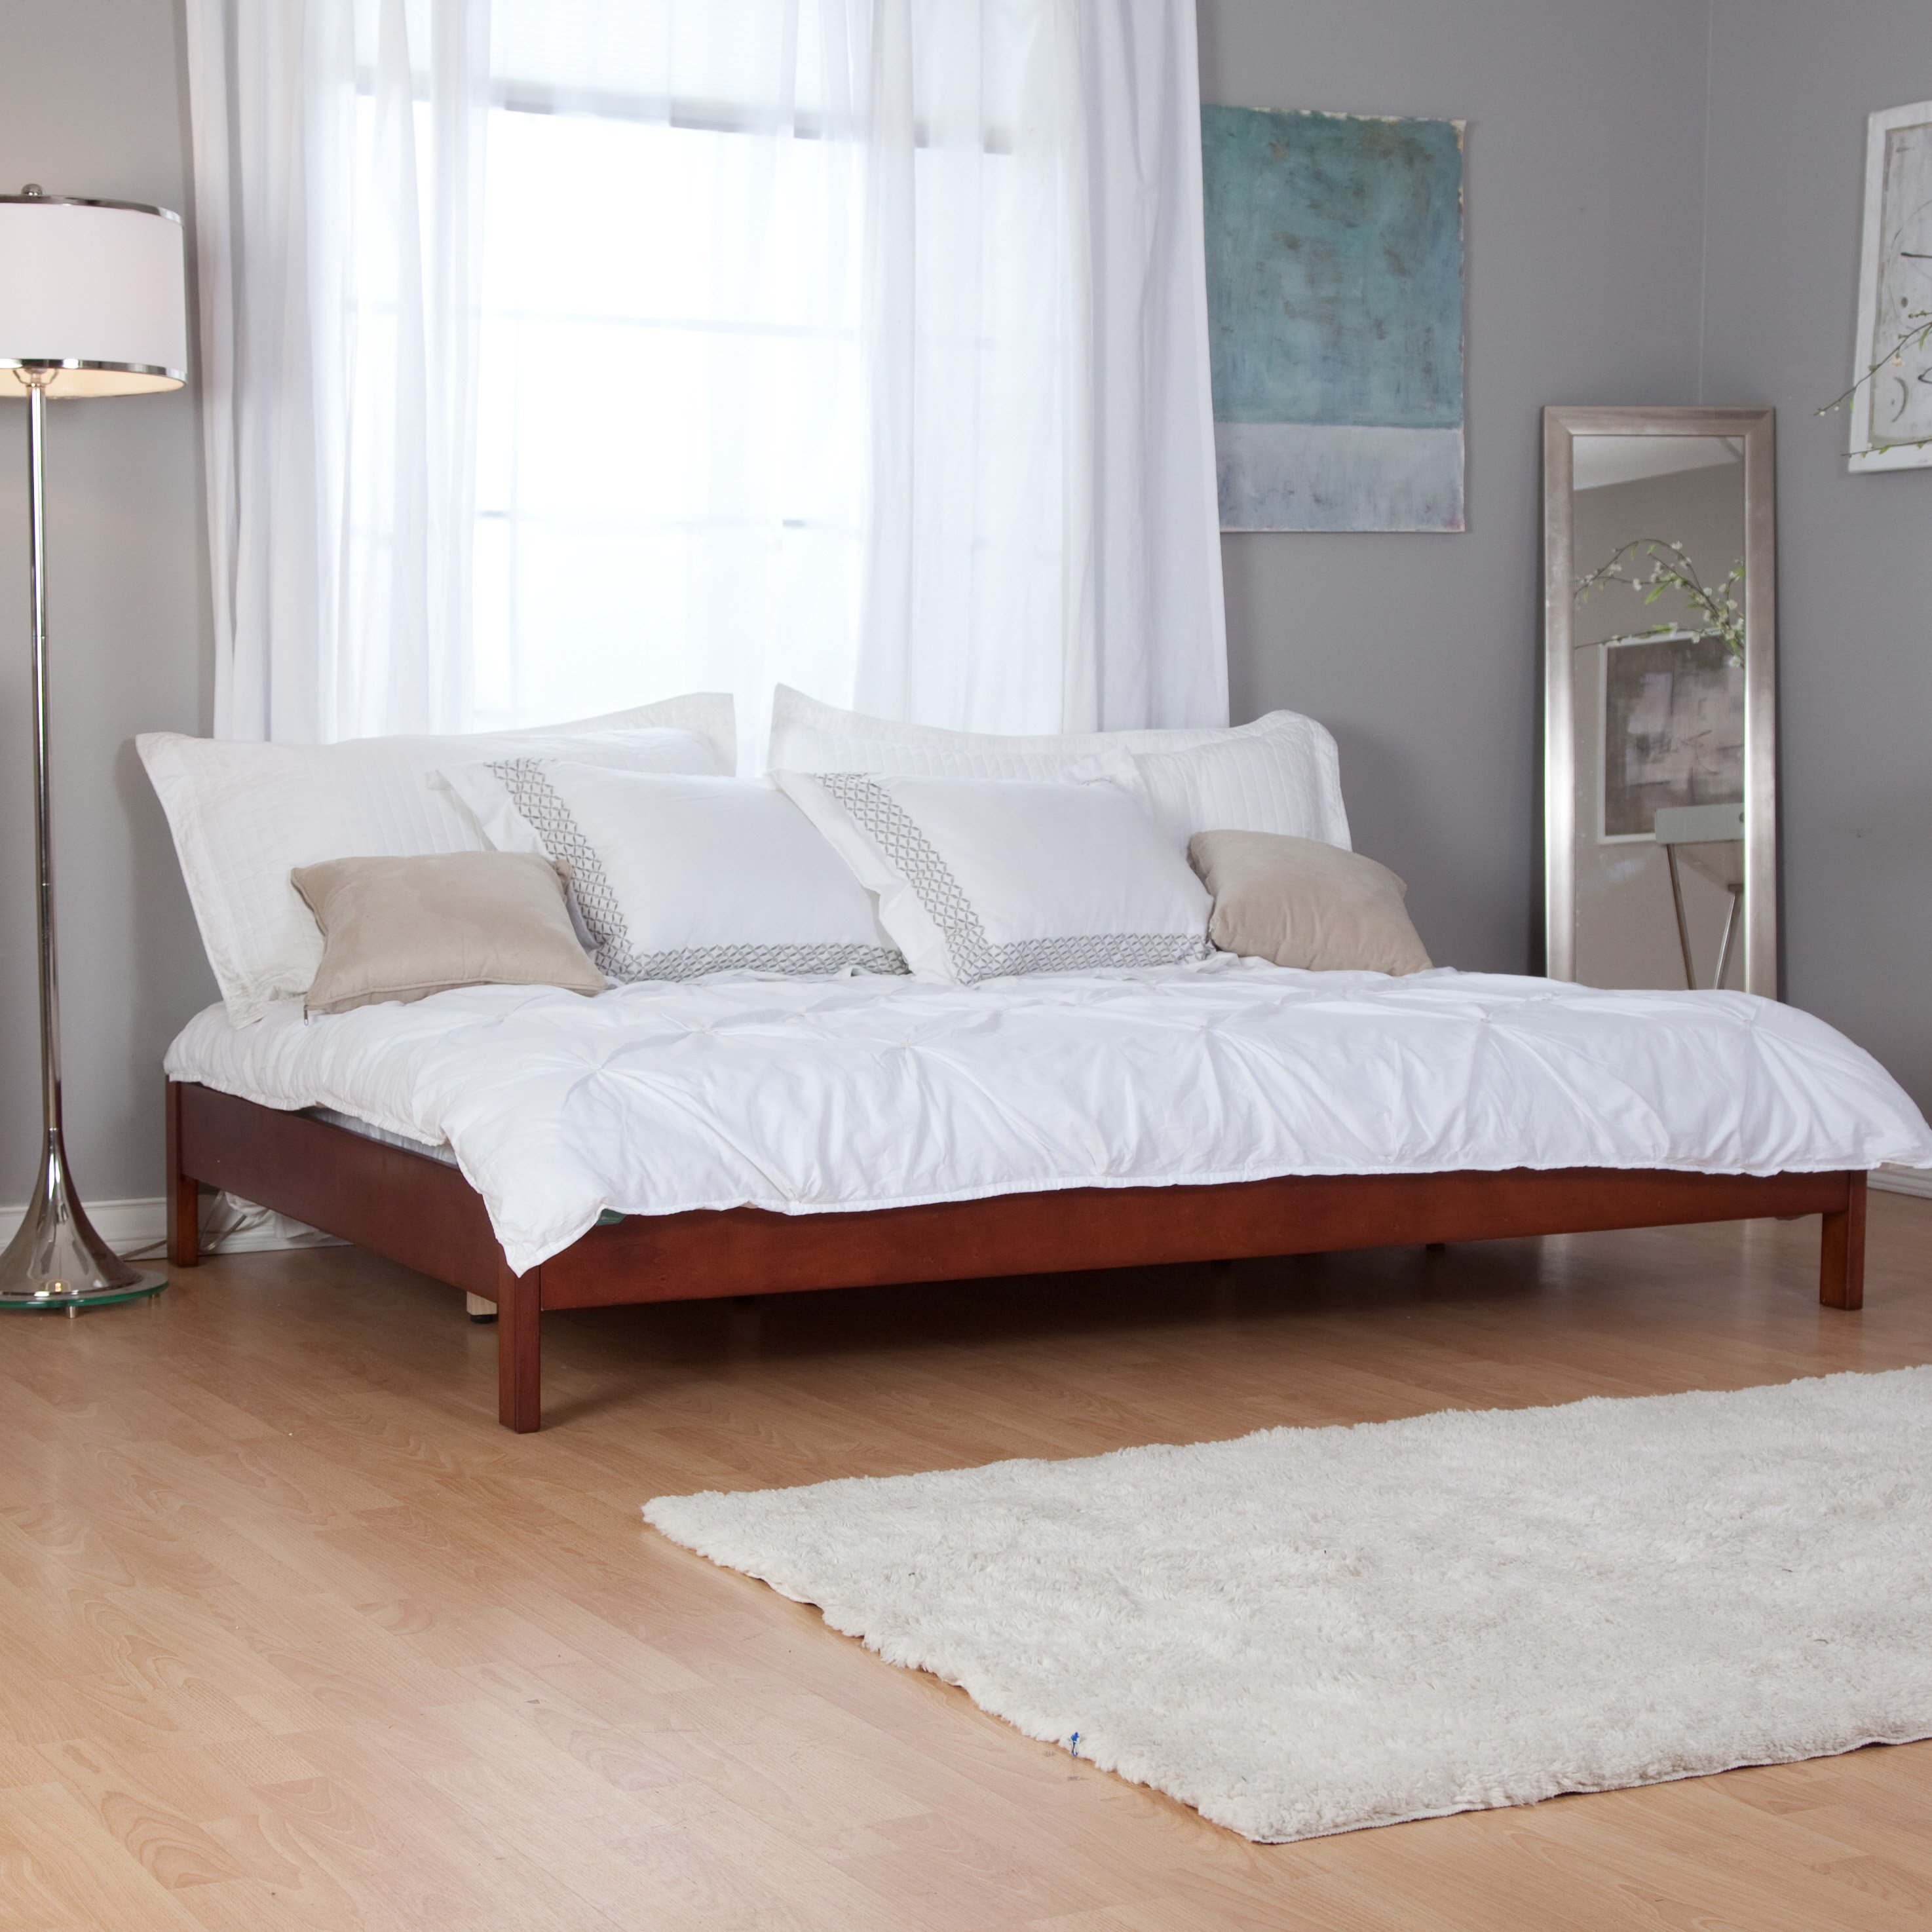 Fashion Bed Group Murray Daybed - Mahogany